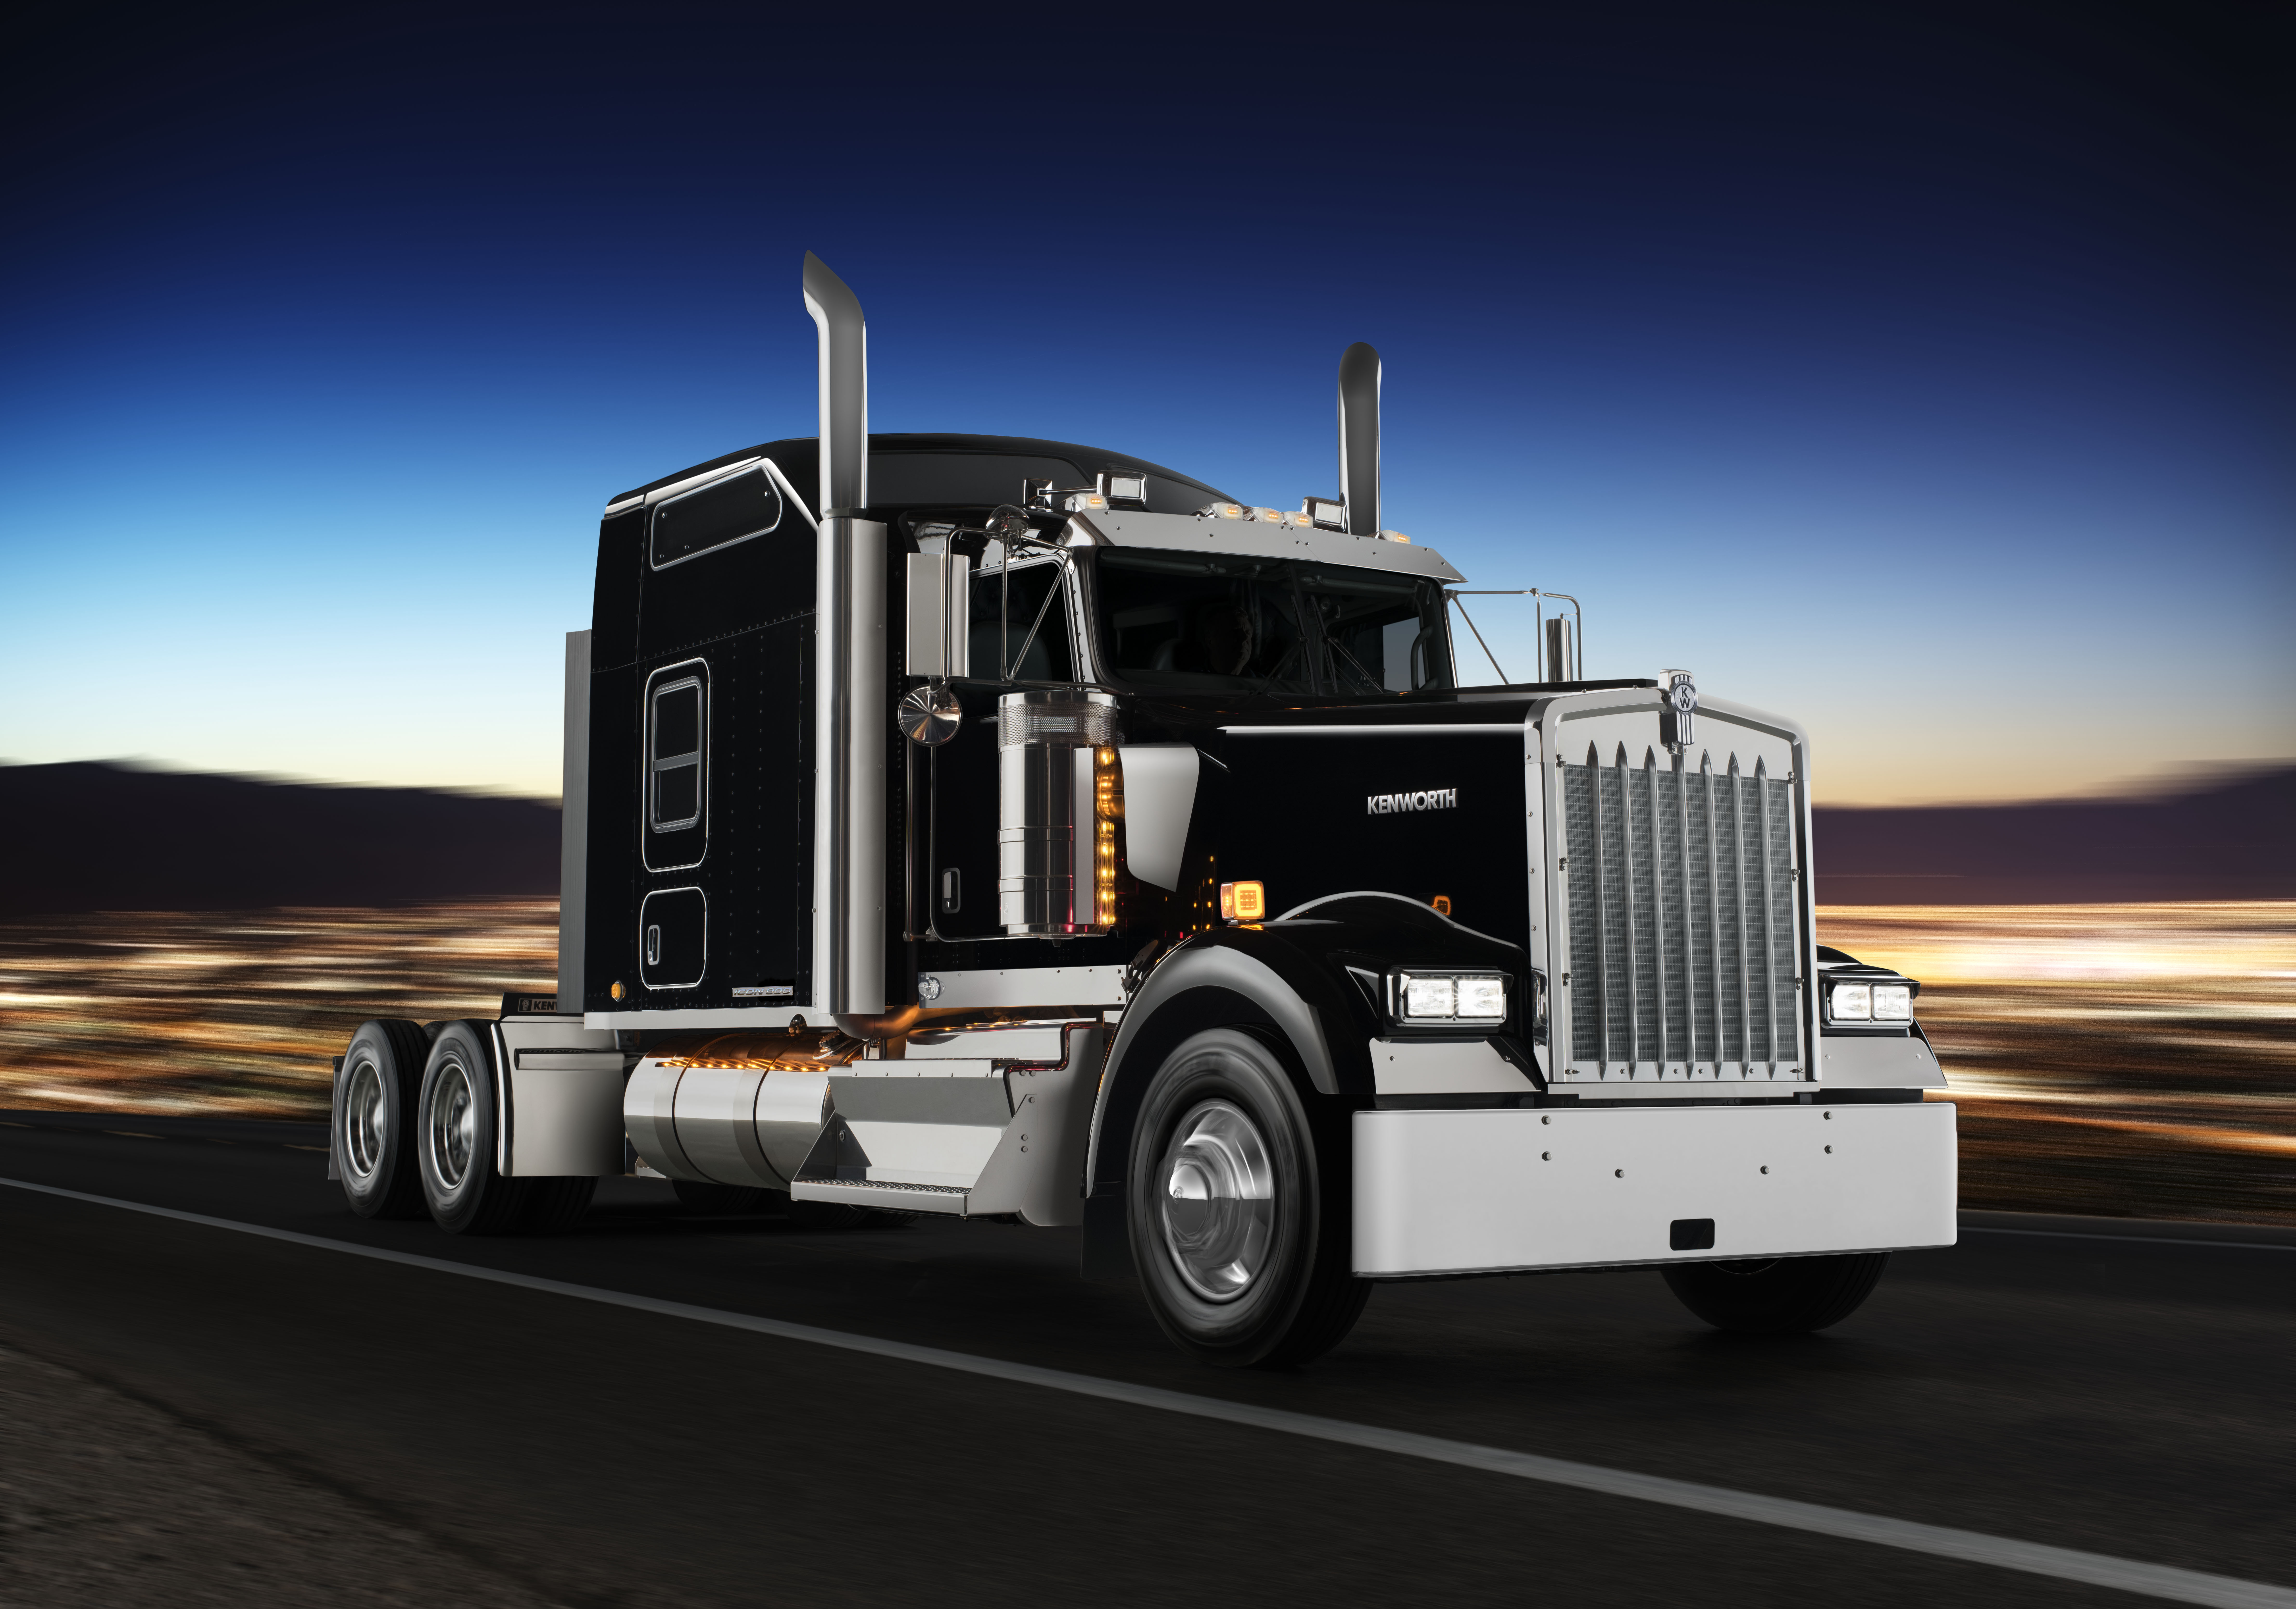 2018 Kenworth W900l >> Kenworth launches W900 spin-off, improves efficiency of aerodynamic tractor - Truck News